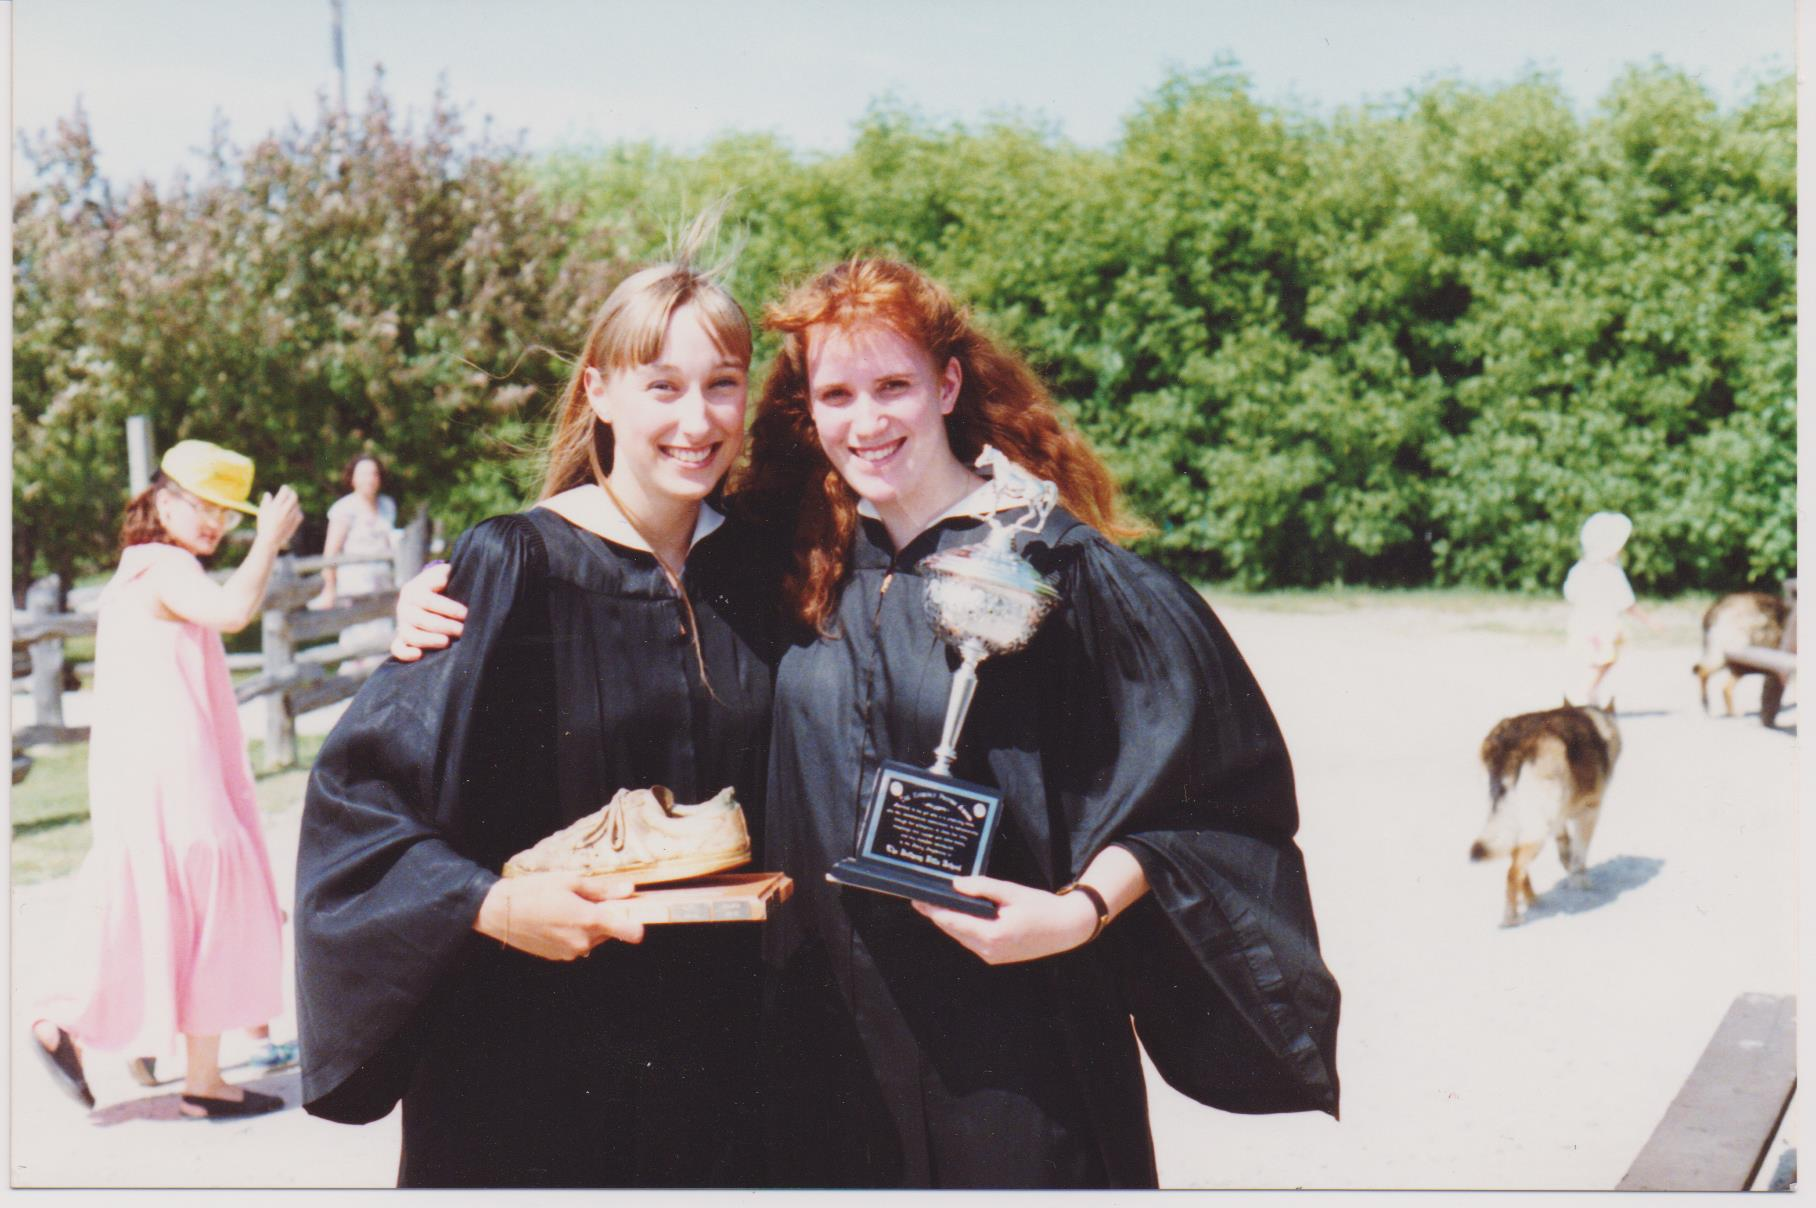 Ruth Allum and Erin Gorski-Howcroft at their High School Graduation - Ruth had been absent from school for several months with Mononeucleosis - still pretty pale in this pic but their friendship is still strong today!